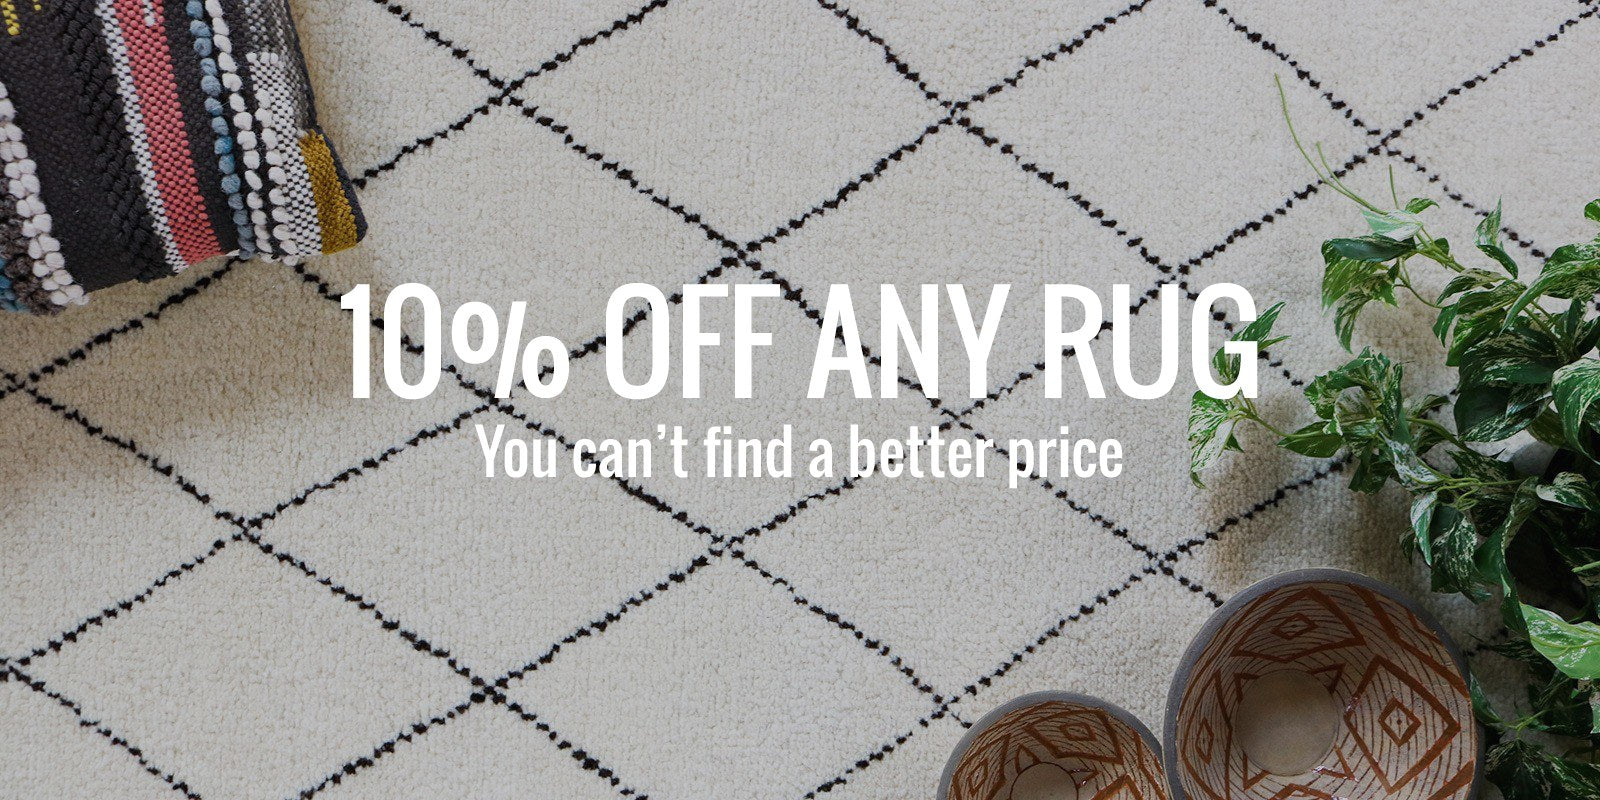 10% off any rug